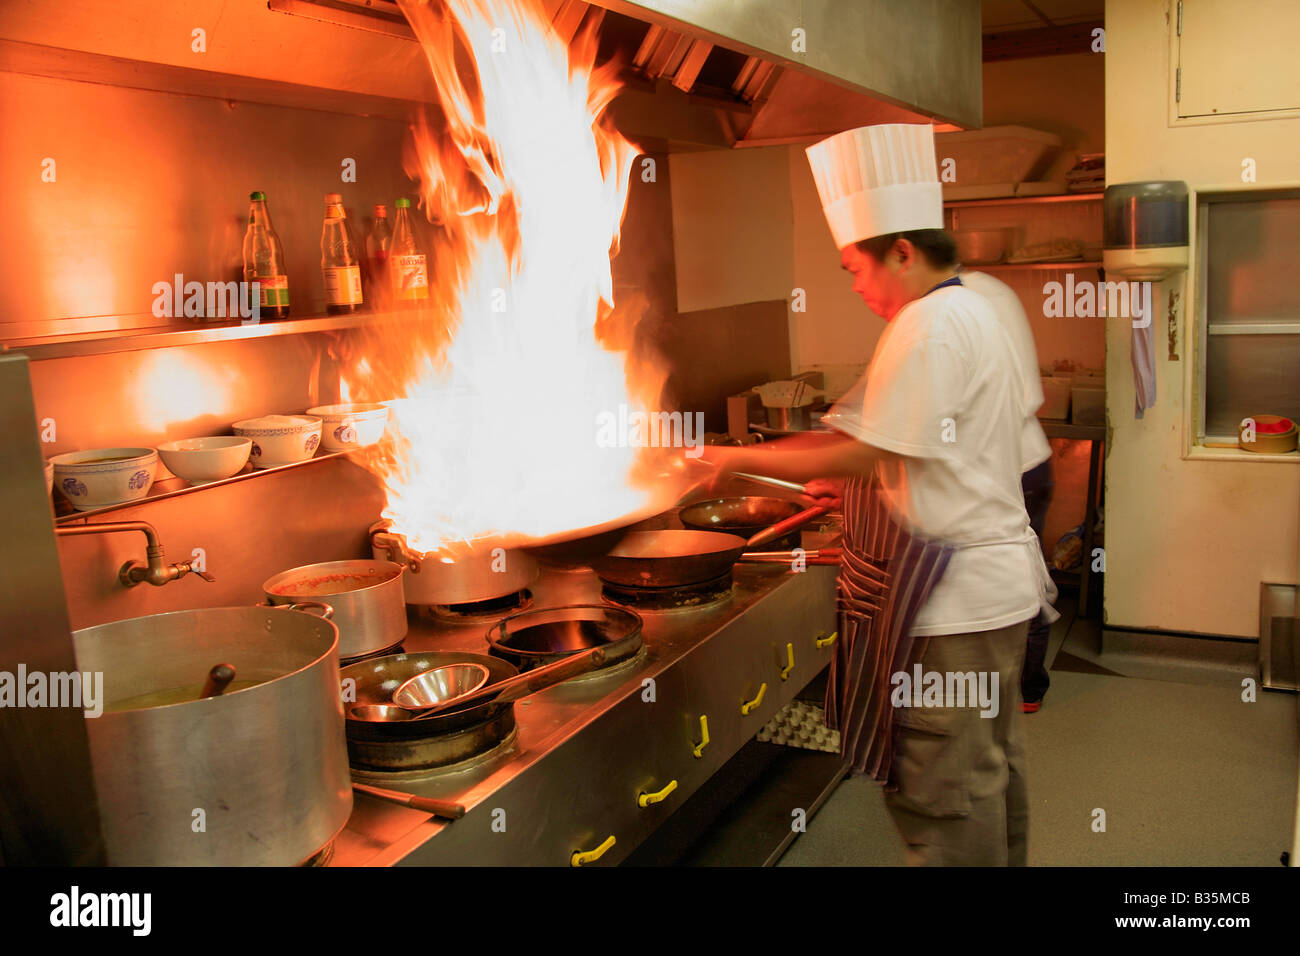 Male thai chef cooking with flaming wok in a restaurant kitchen stock photo 19180123 alamy - Chef cucine catanzaro ...